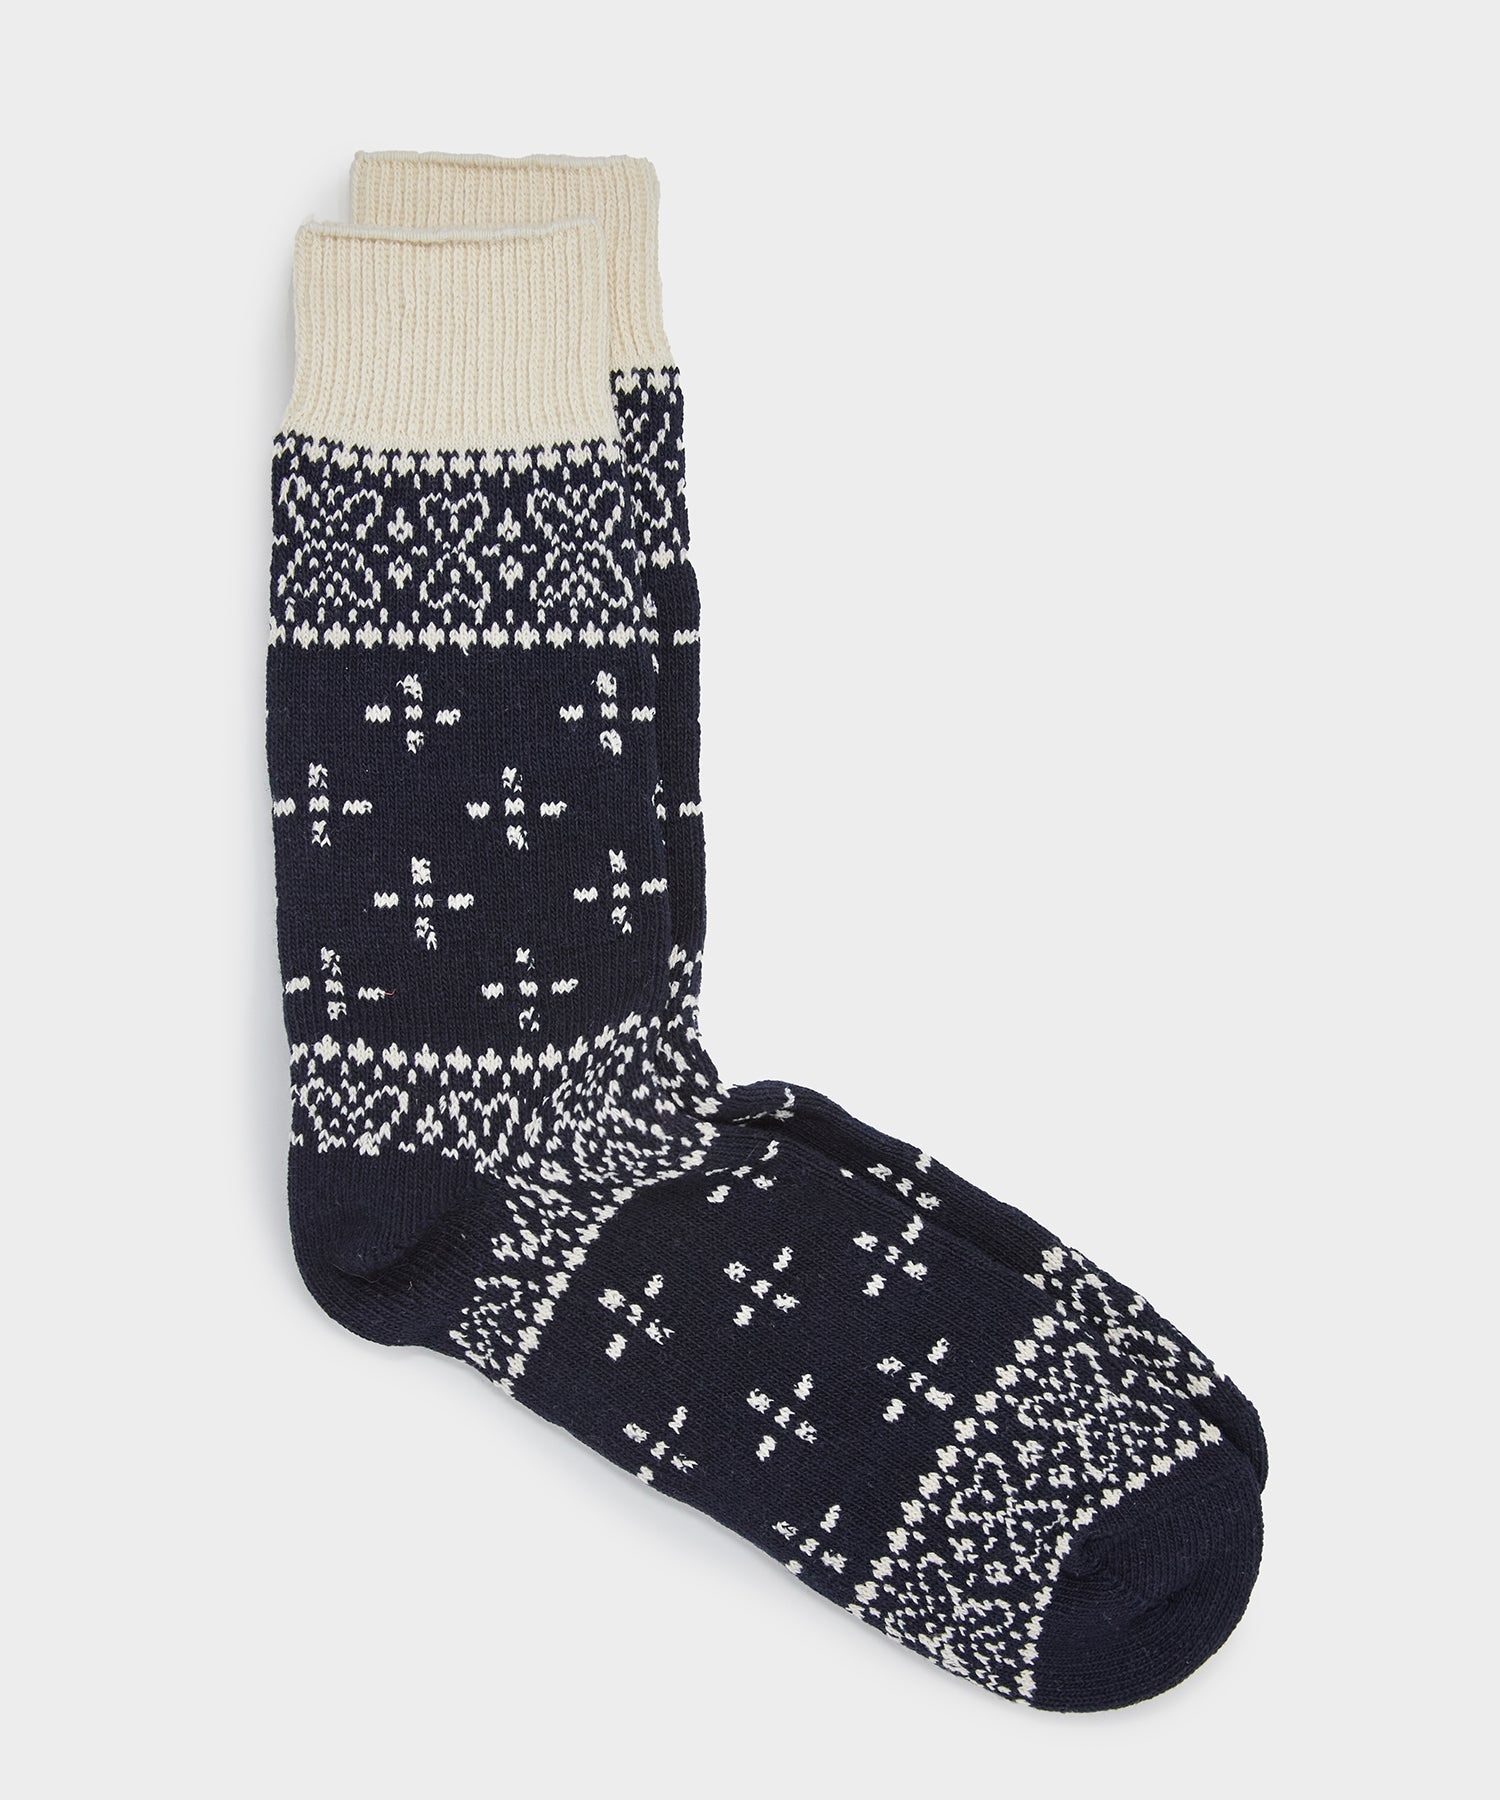 RoToTo Bandana Pattern Crew Socks in Navy